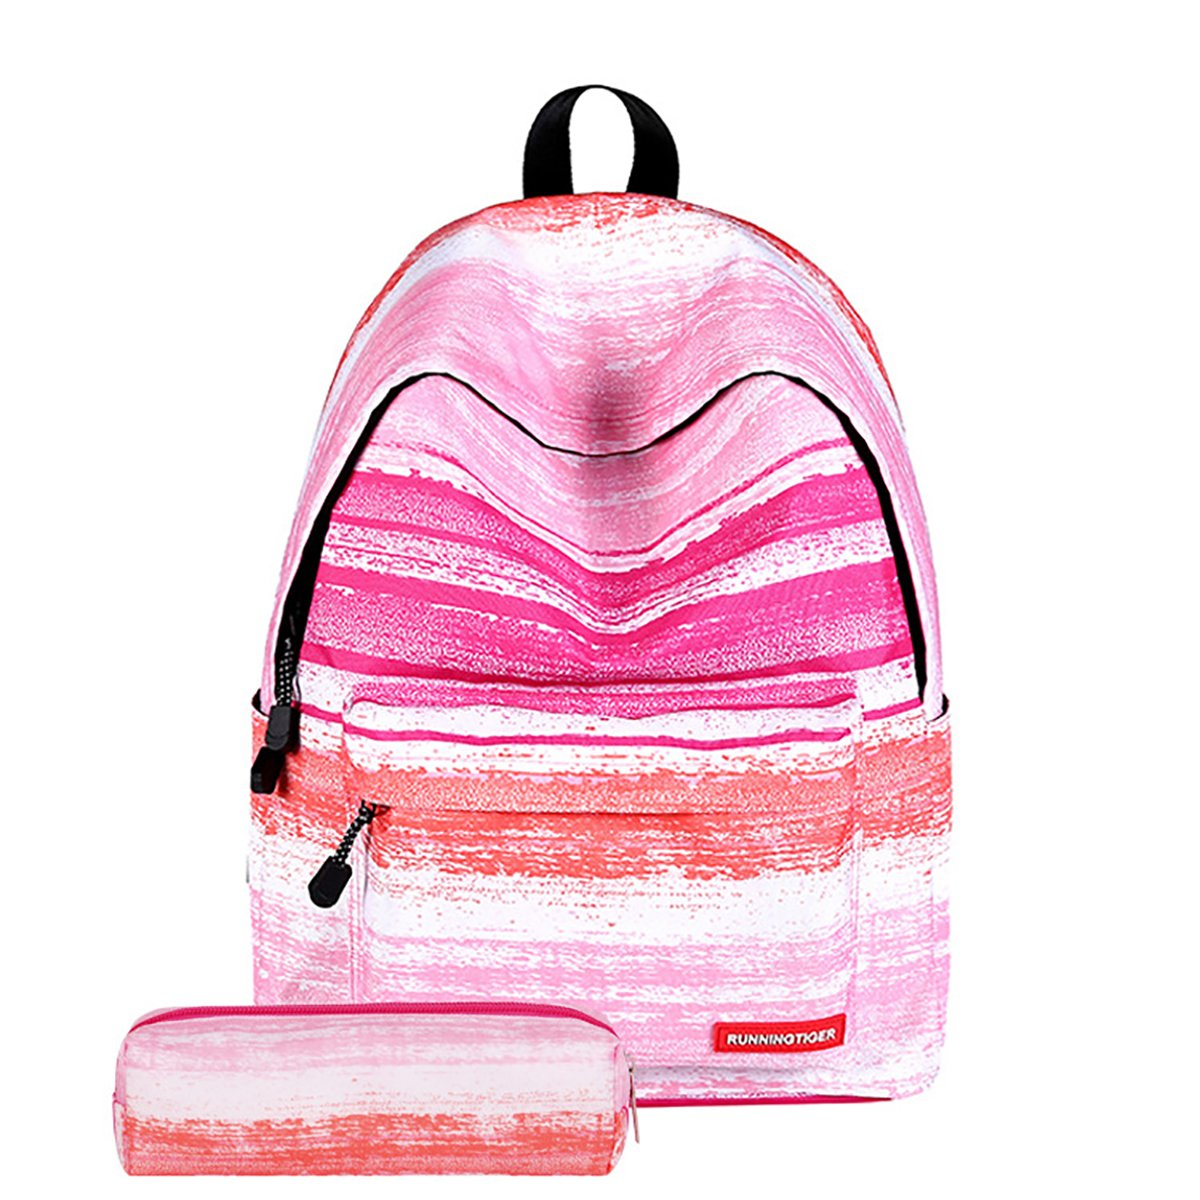 JOSEKO Student Backpack, Galaxy Pattern School Bookbag Shoulder Bag Laptop Backpack Rucksack Daypack Pink# Pencil Case 11.8'' x 6.7'' x 15.74''(L x W x H)